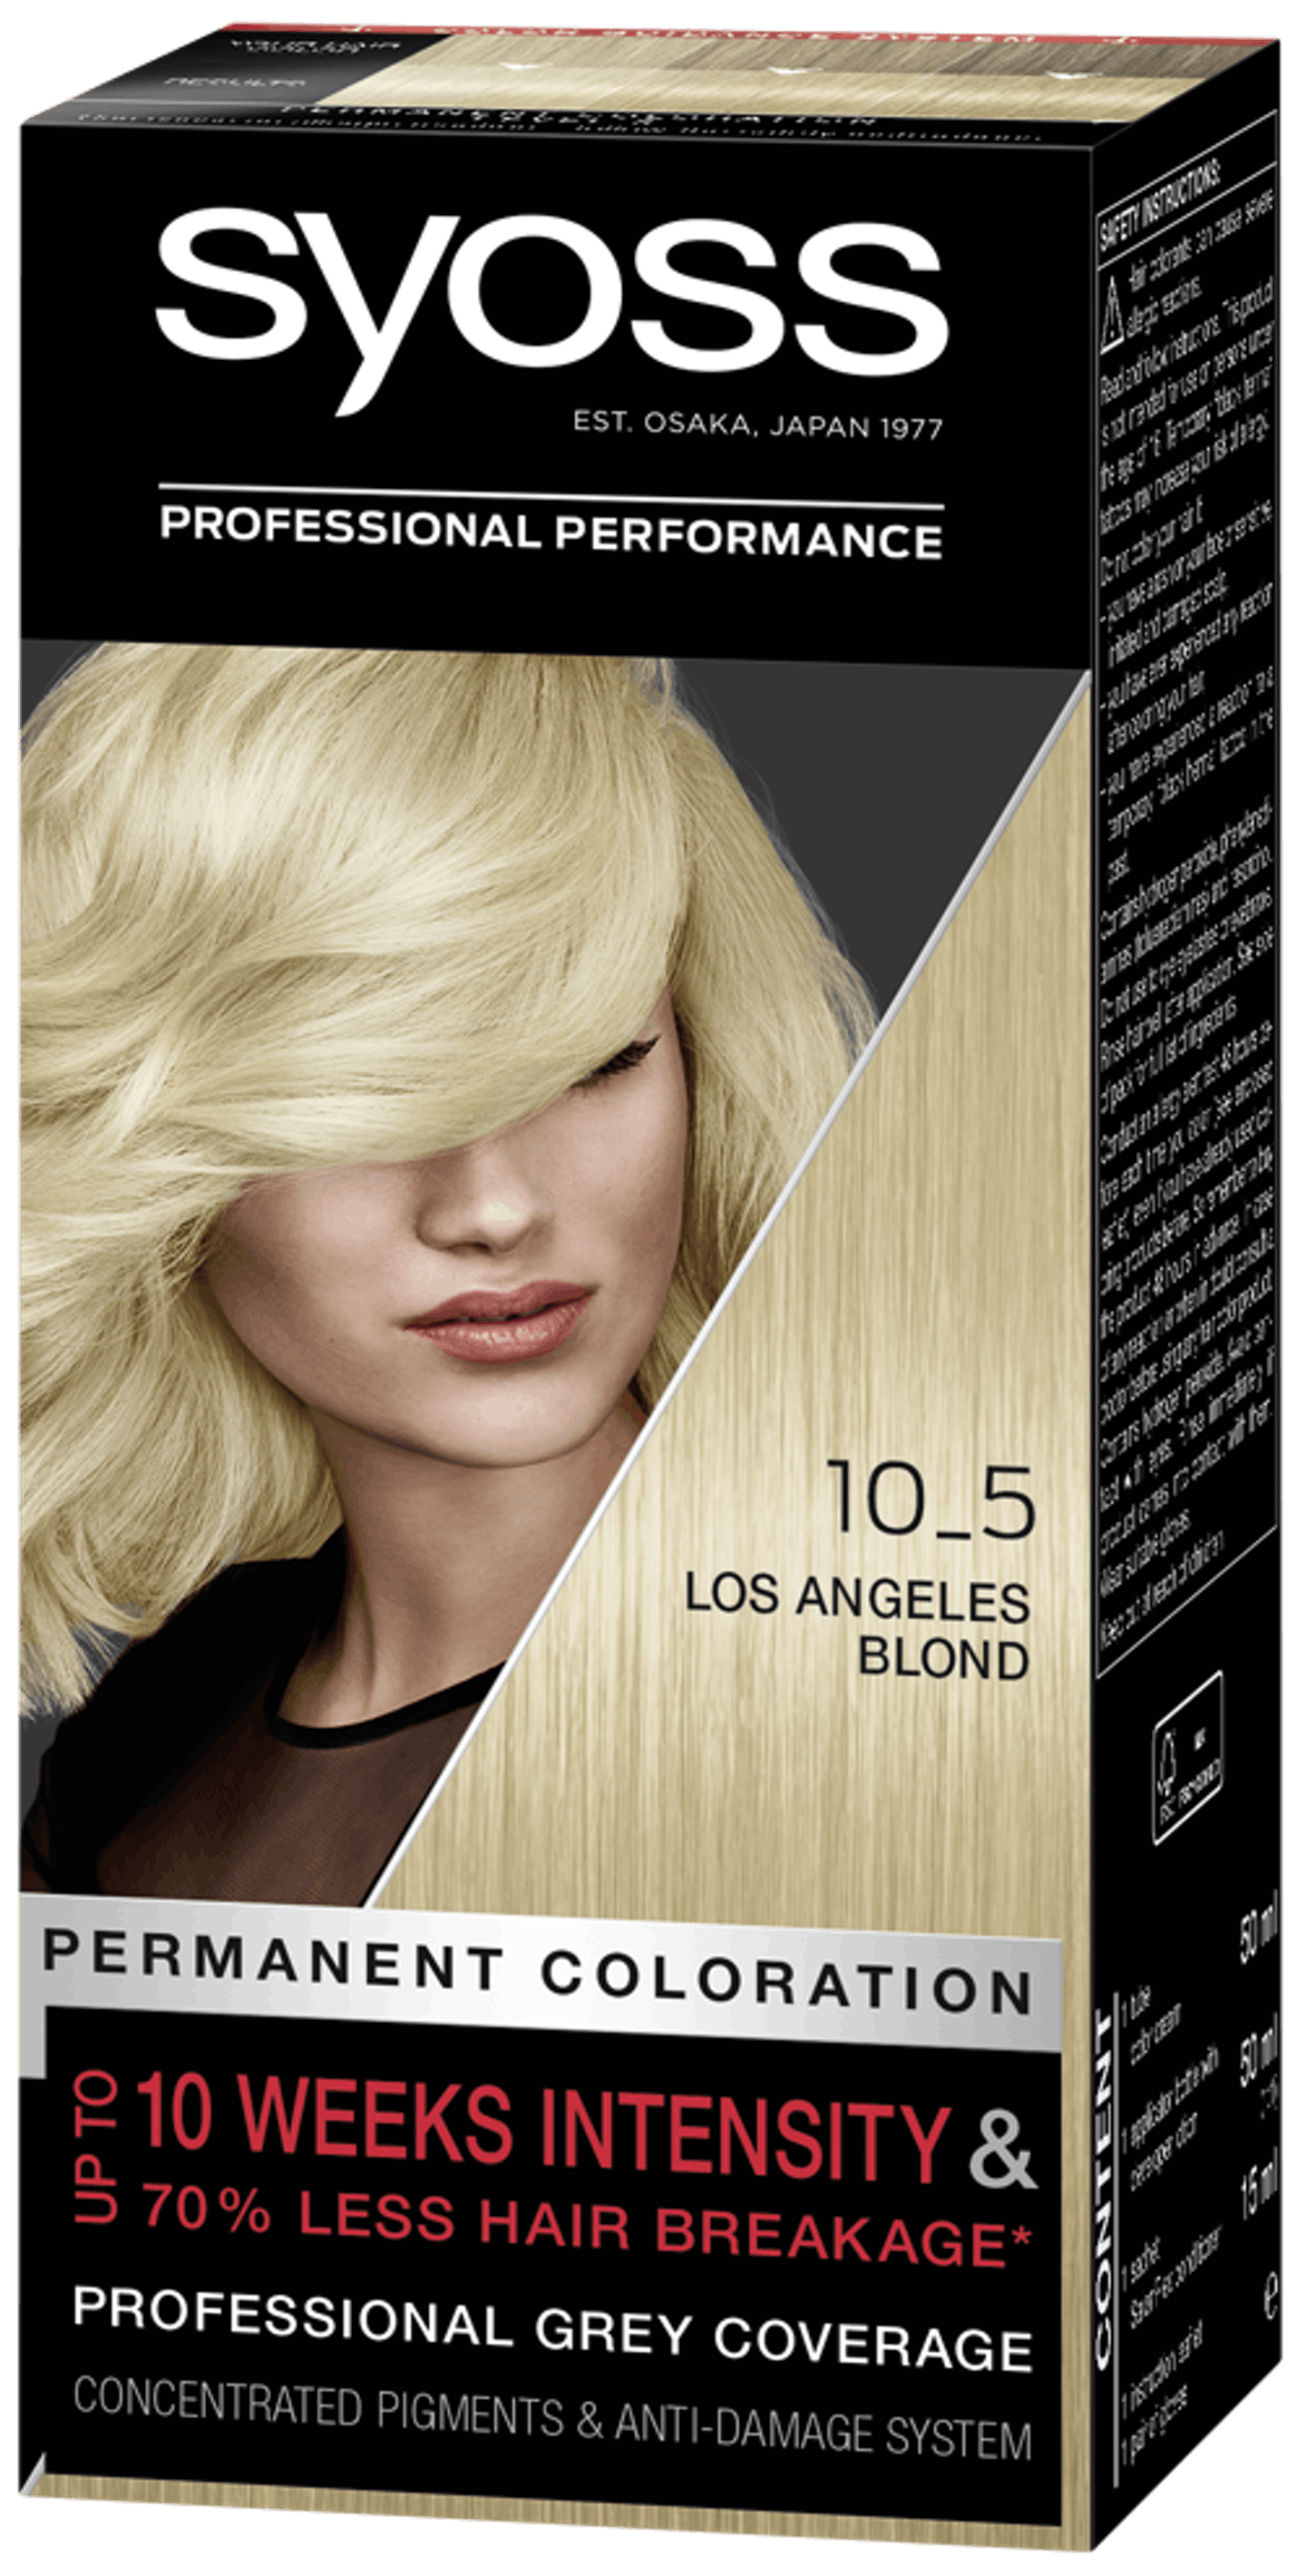 Syoss Professional Performance 10-5 Los Angeles Blond